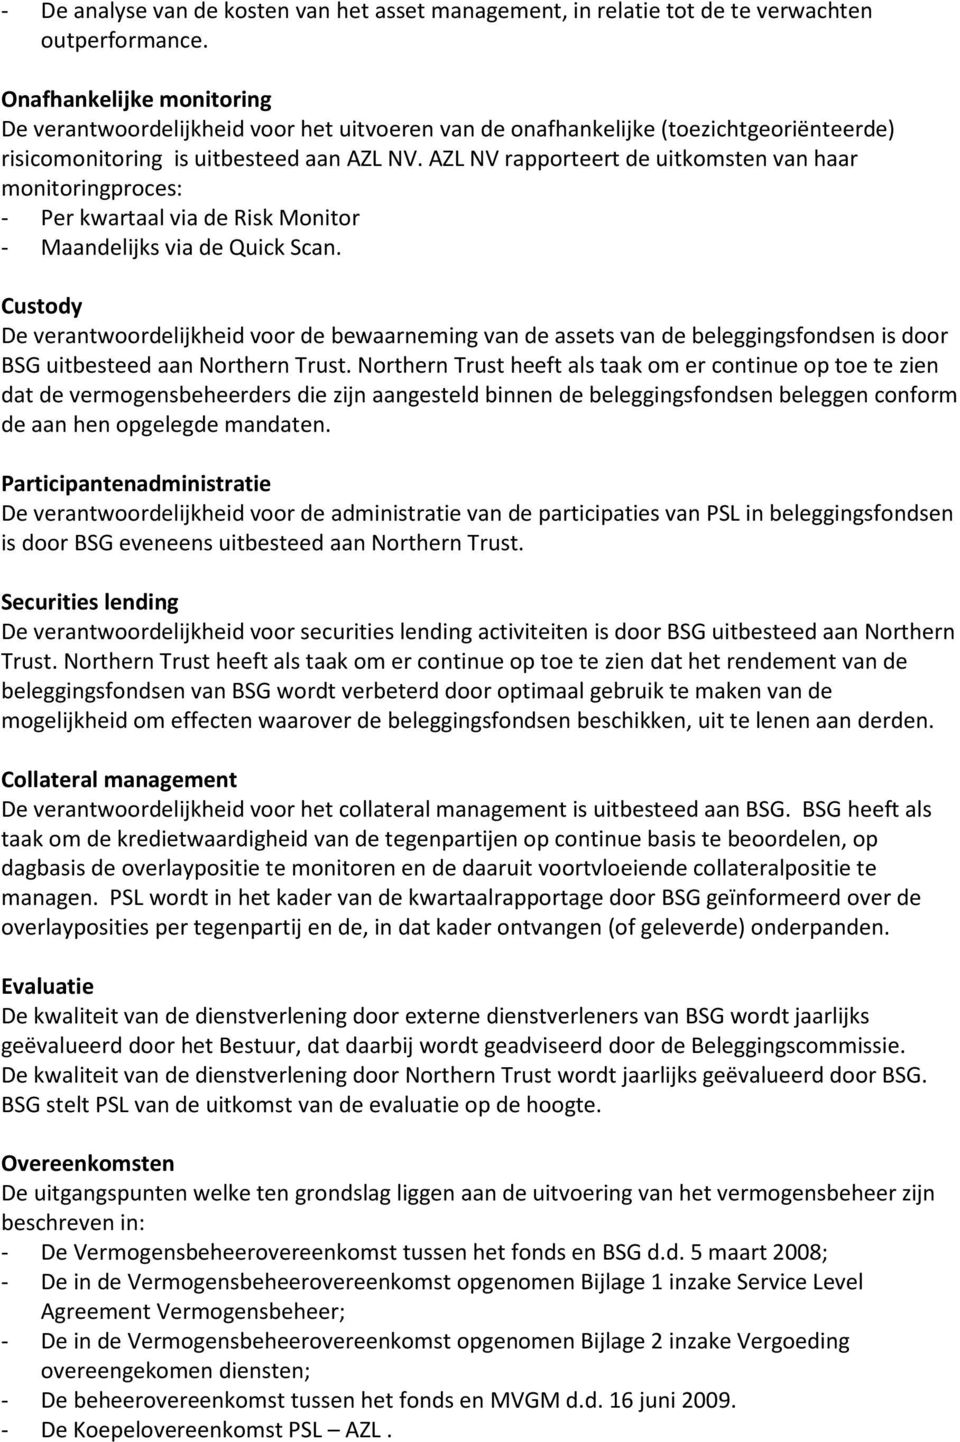 AZL NV rapporteert de uitkomsten van haar monitoringproces: - Per kwartaal via de Risk Monitor - Maandelijks via de Quick Scan.